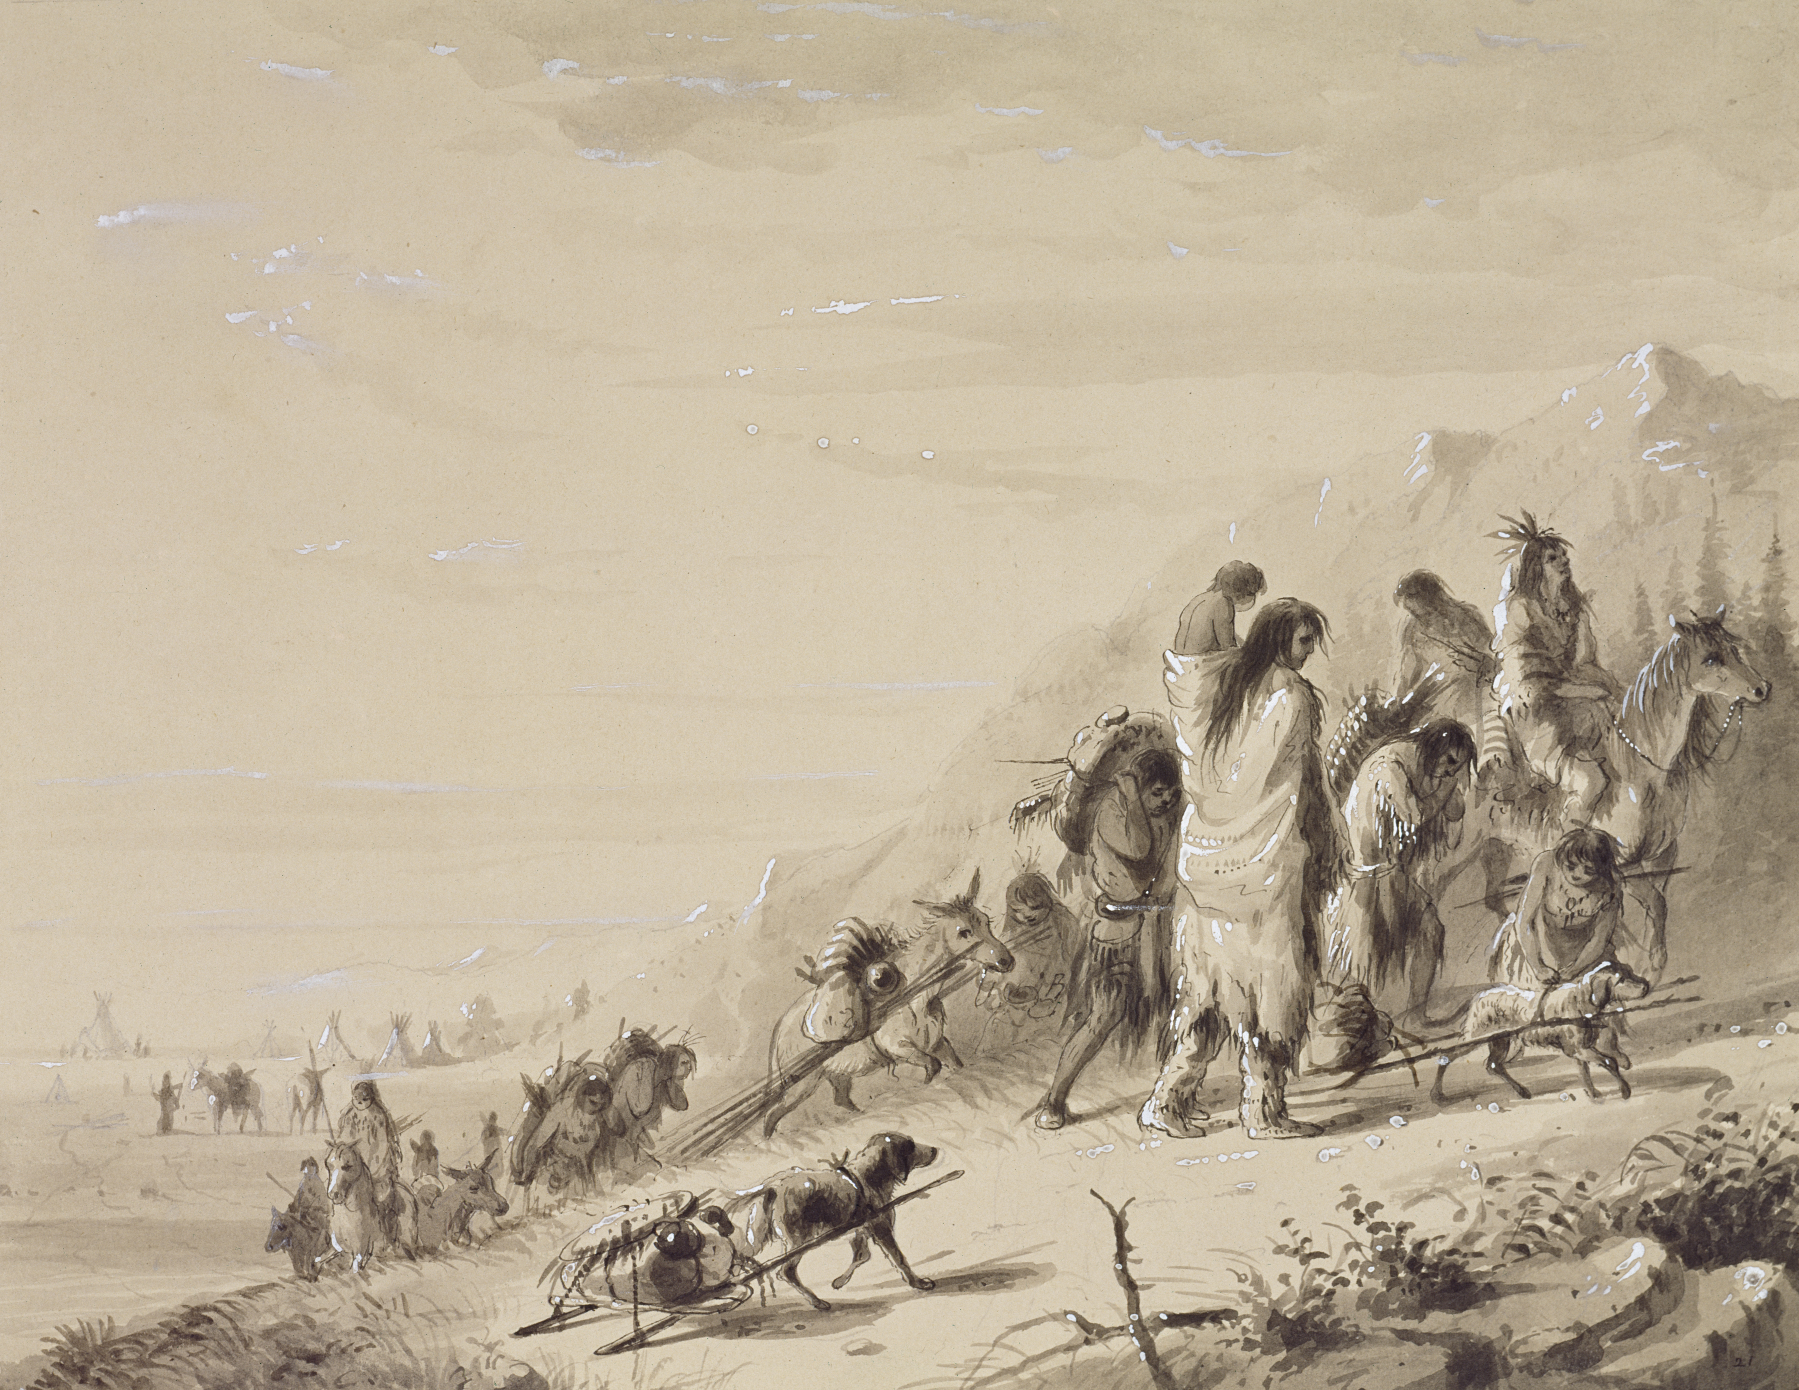 File:Alfred Jacob Miller - Pawnee Indians Migrating - Walters